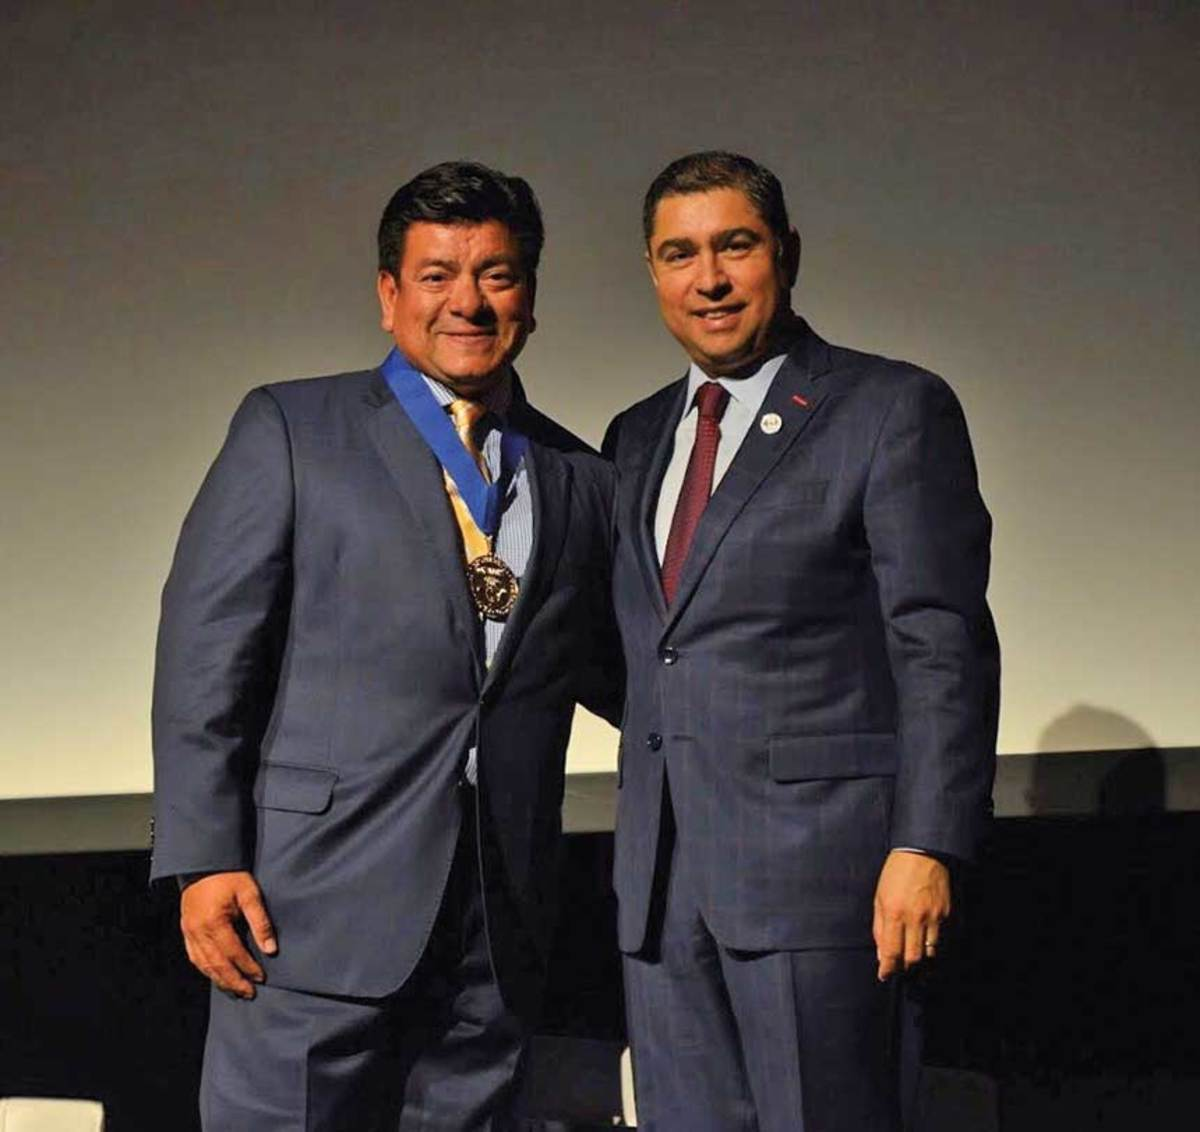 Sandoval (left), with Jorge Ferraez, received a prestigious 2018 Maestro Award recognizing national Latino leaders.